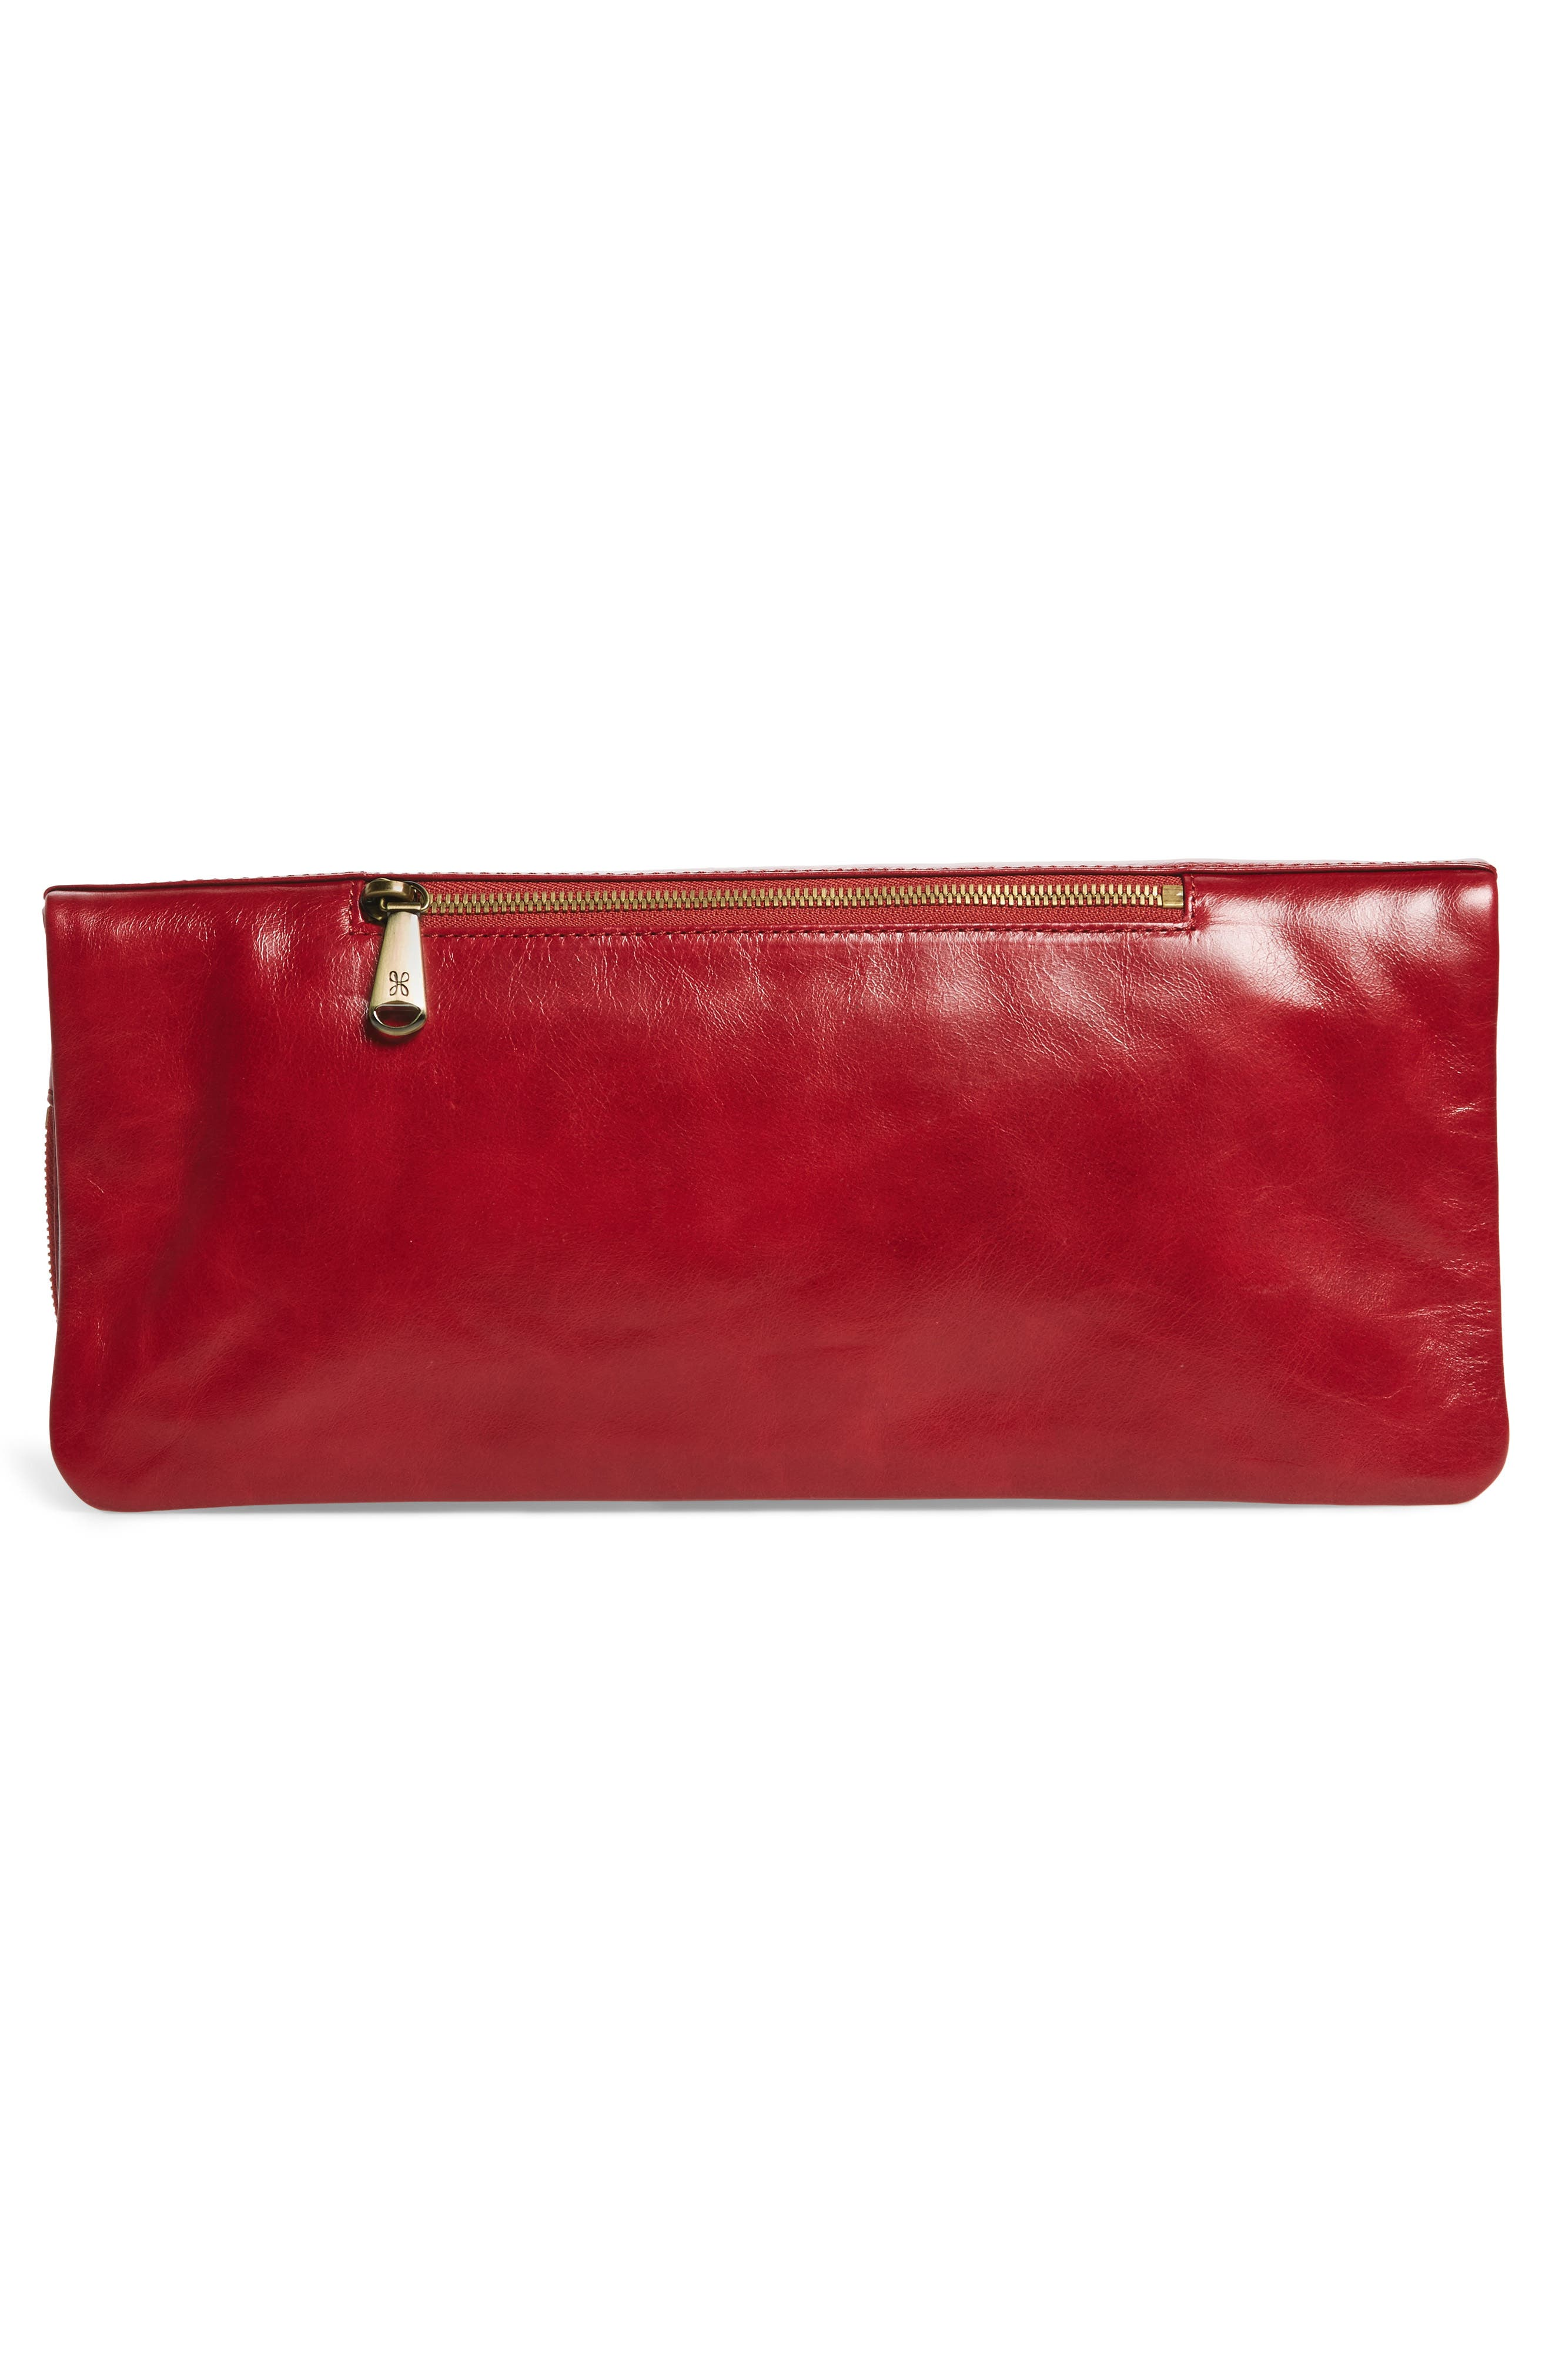 Raine Calfskin Leather Foldover Clutch,                             Alternate thumbnail 12, color,